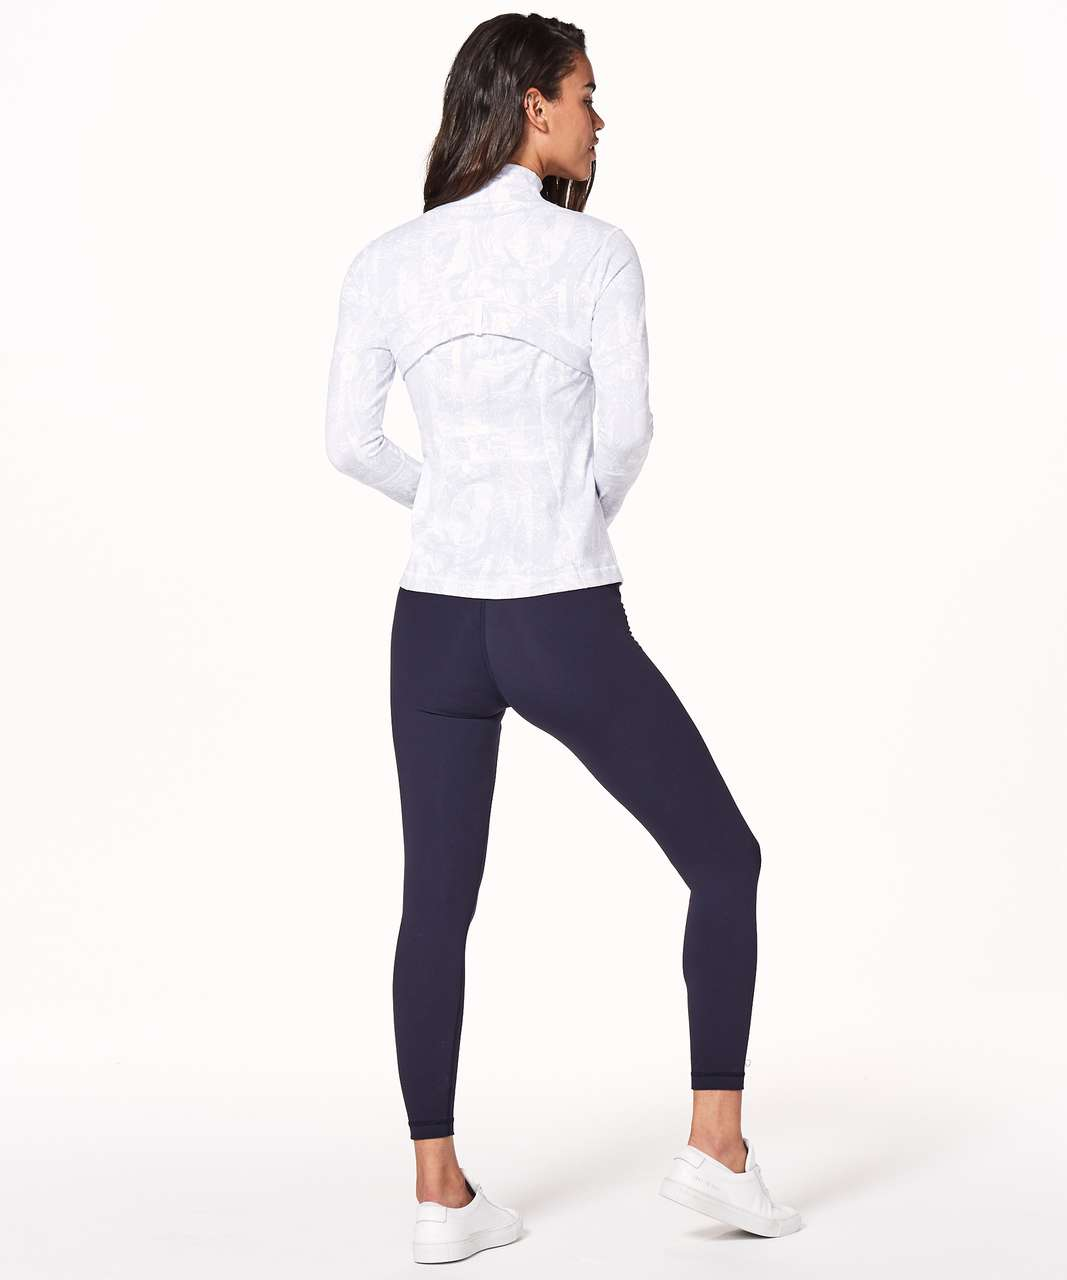 Lululemon Define Jacket - Eternal Wave White